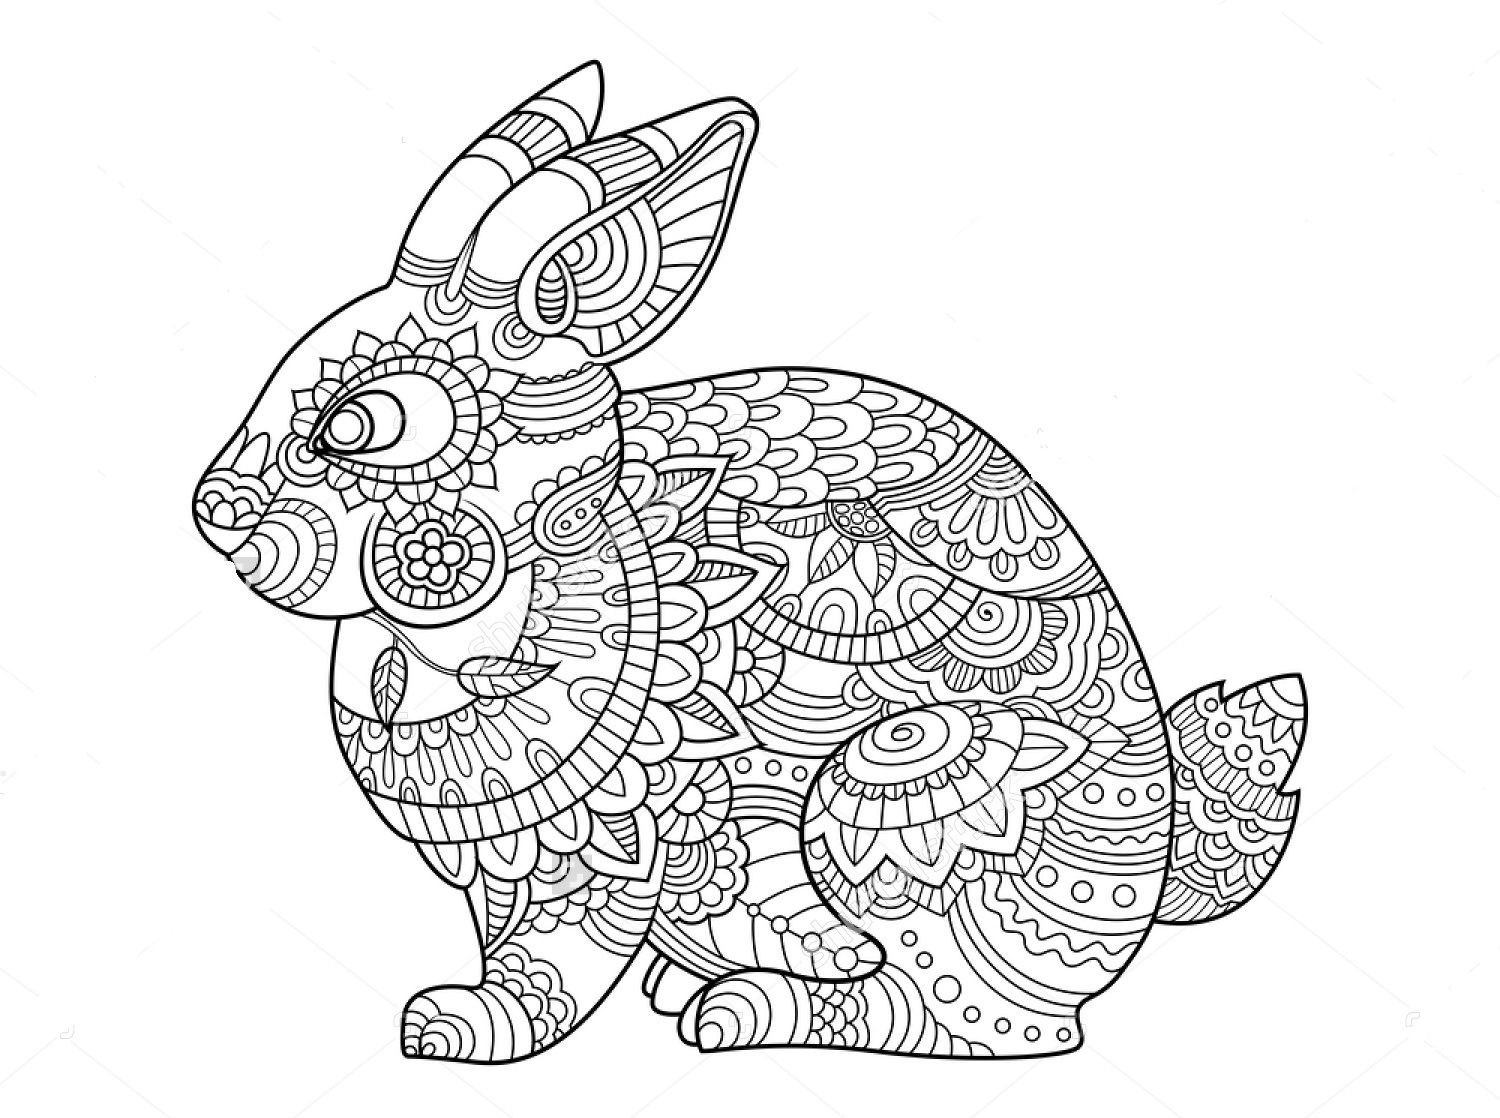 Rabbit Zentangle Coloring Page Mandala Coloring Pages Animal